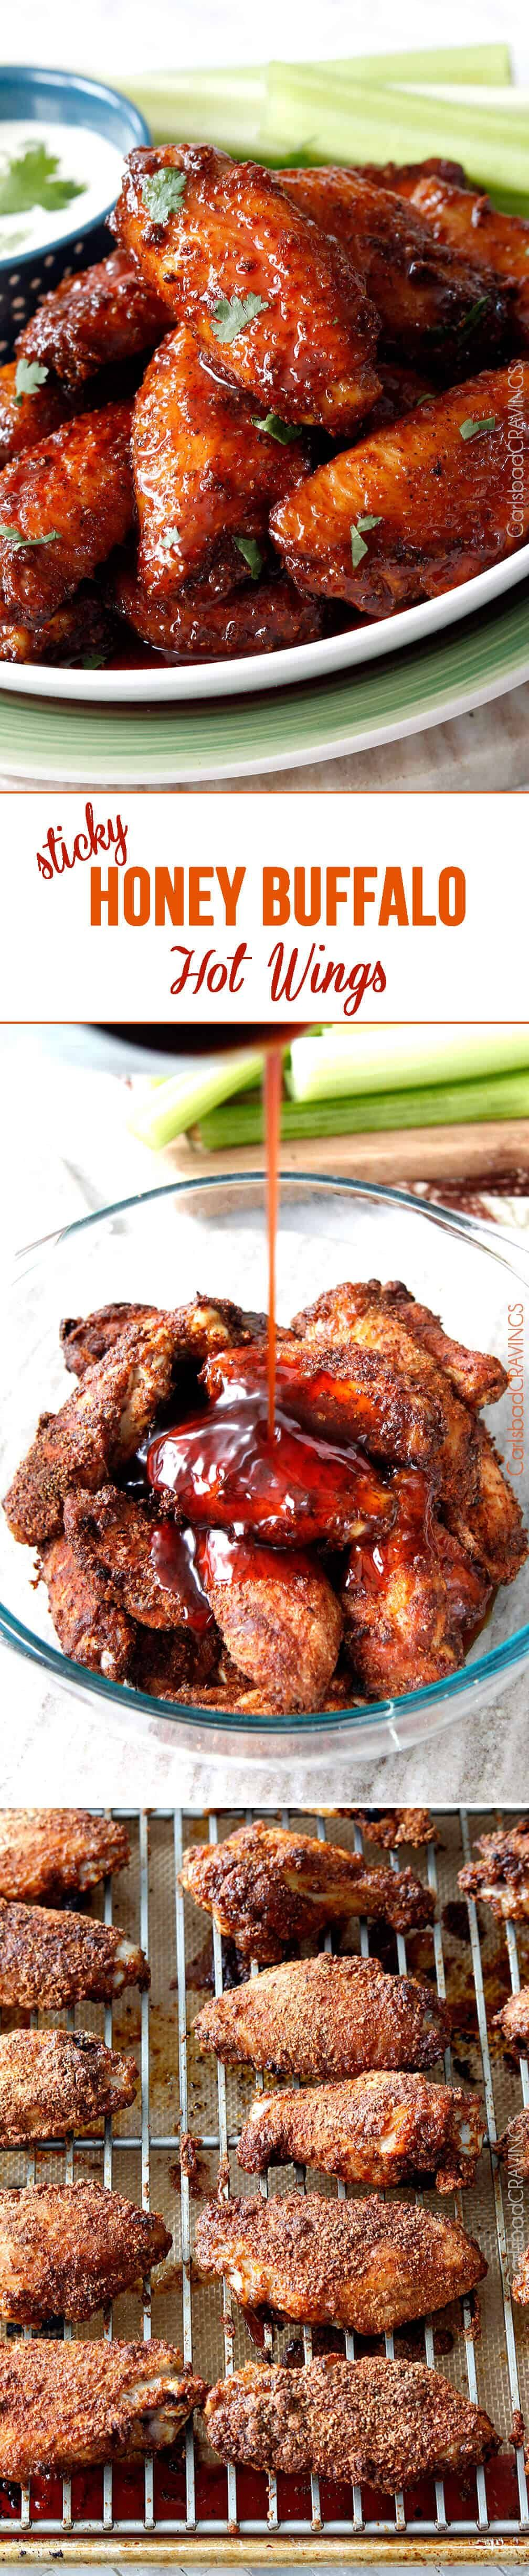 Perfect for Game Day or any day! Sticky Buffalo Honey Hot Wings - the BEST buffalo wings you will ever devour and as easy as tossing in a rub, baking and coating in an easy, tantalizing sauce. #appetizer #wings #buffalowings via @carlsbadcraving